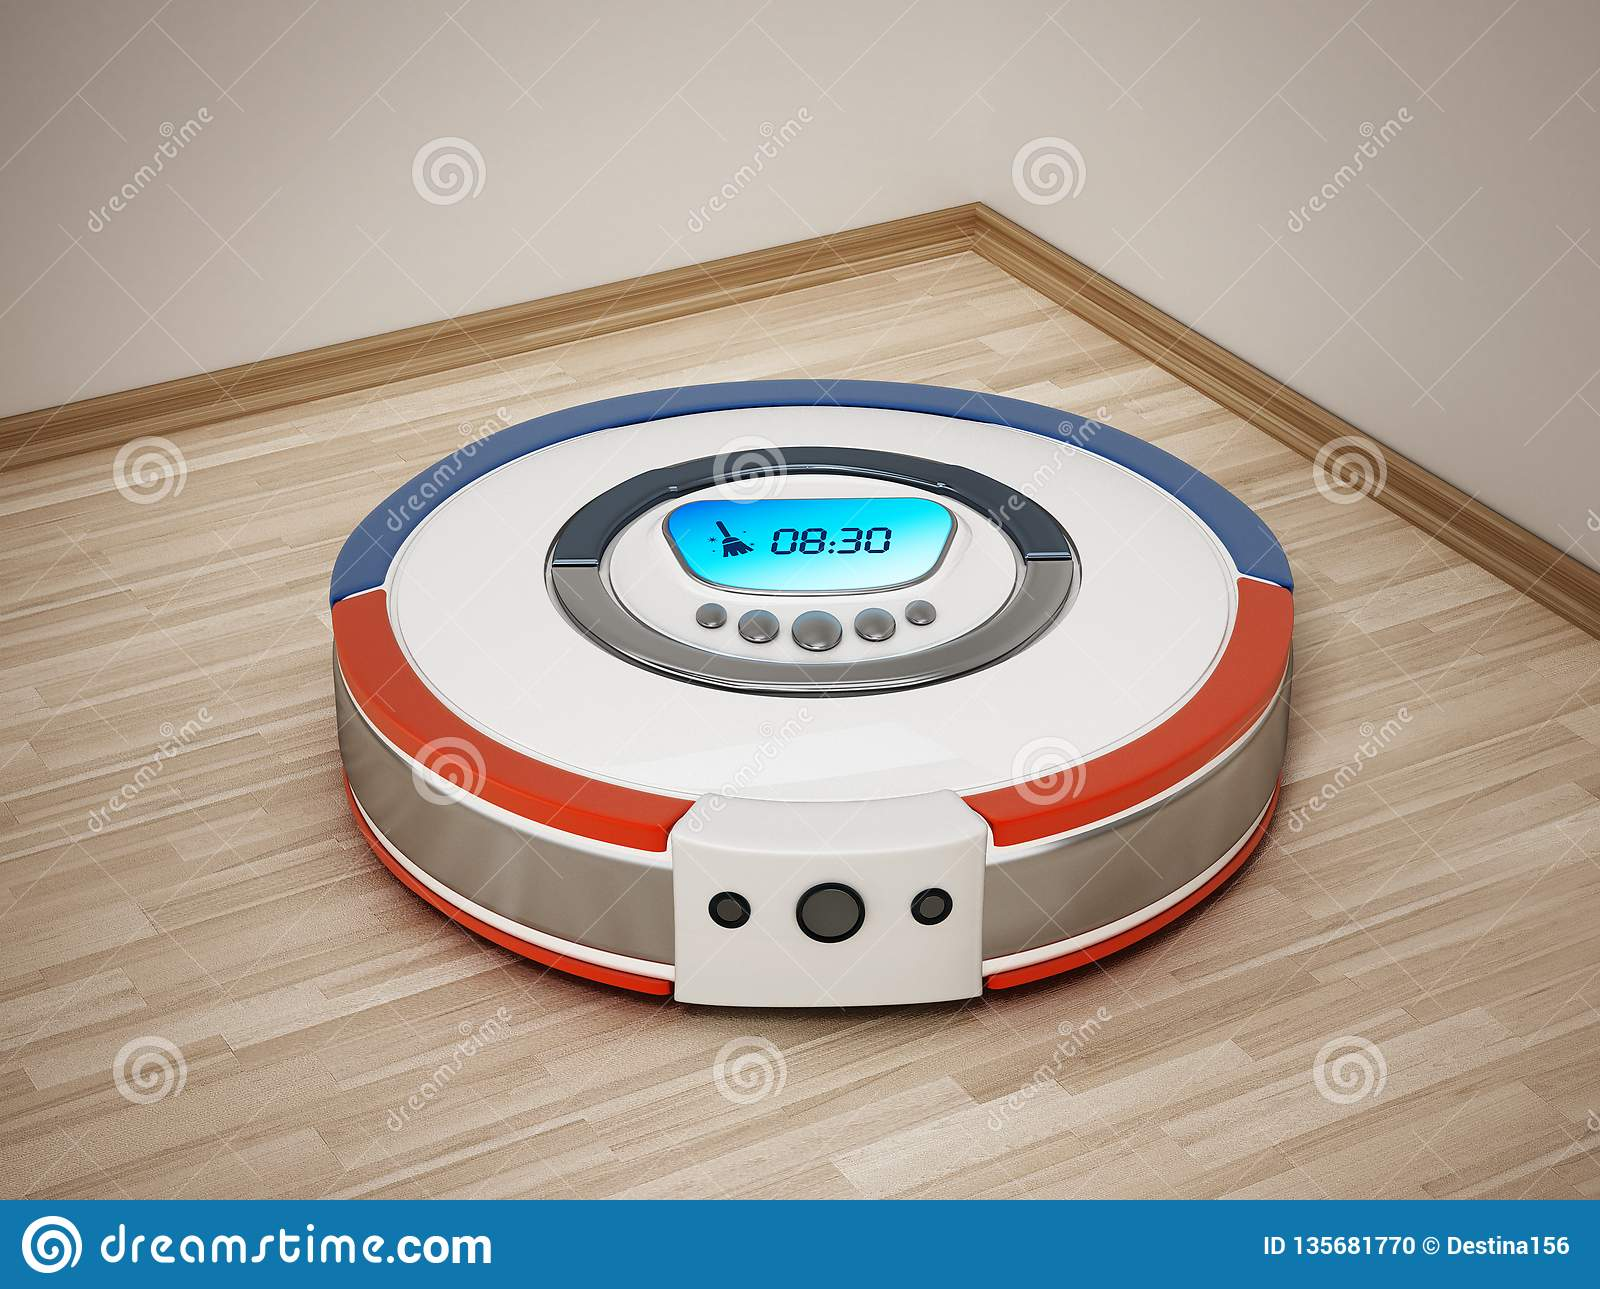 Automated vacuum cleaner on wooden floor. 3D illustration